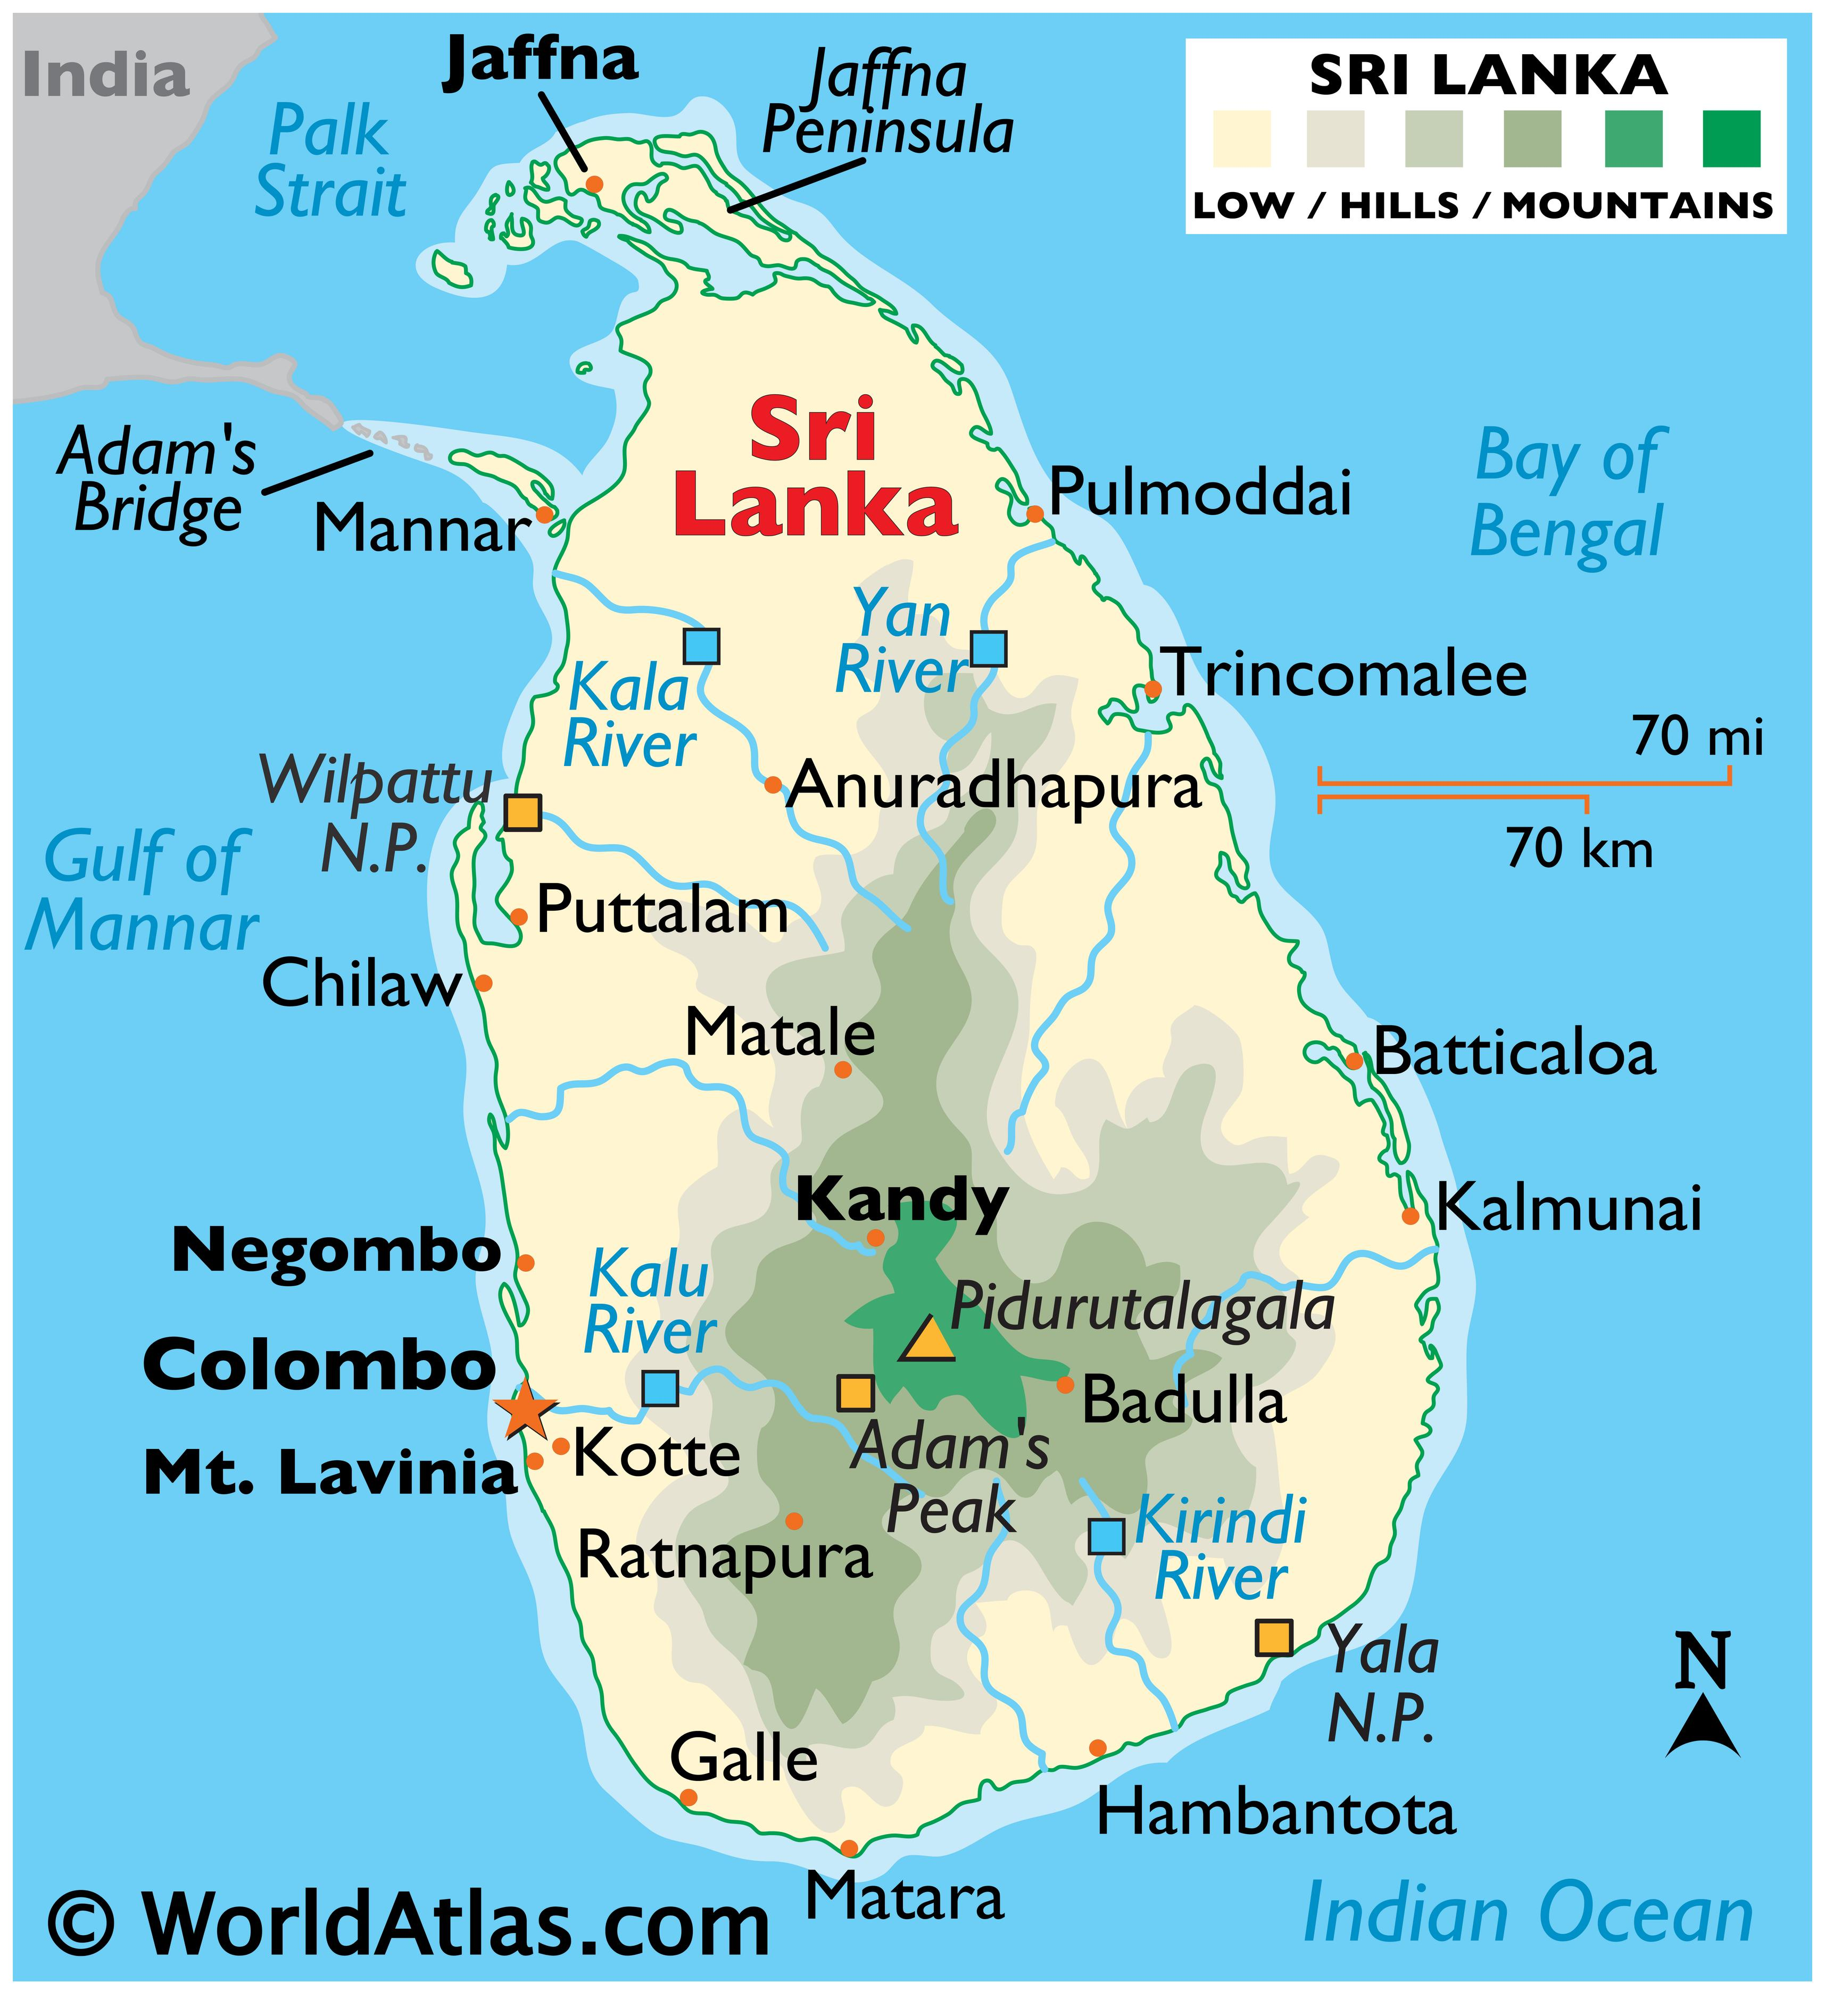 Physical Map of Sri Lanka showing state boundaries, relief, major rivers, highest point, important cities, national parks, and more.